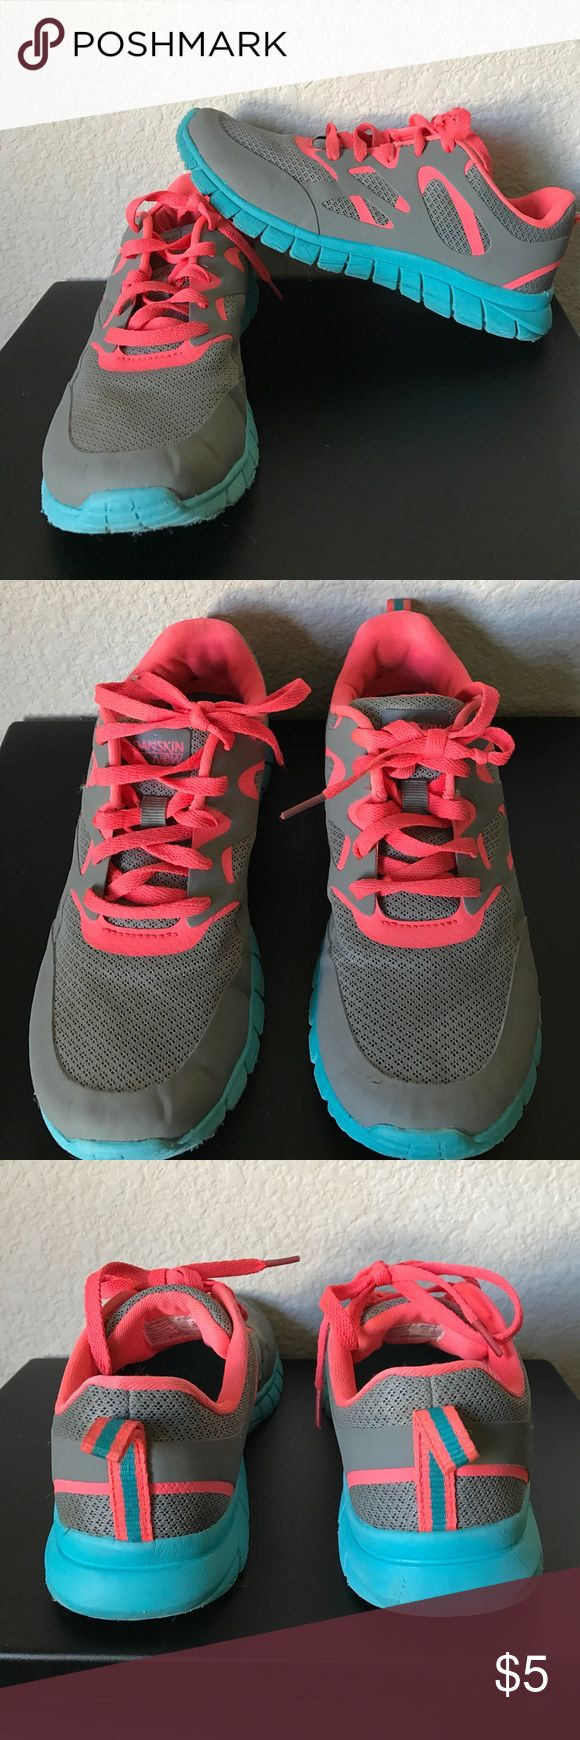 Girls tennis shoes Grey, coral and blue shoes. Worn a few times so still in great condition. Danskin Now Shoes